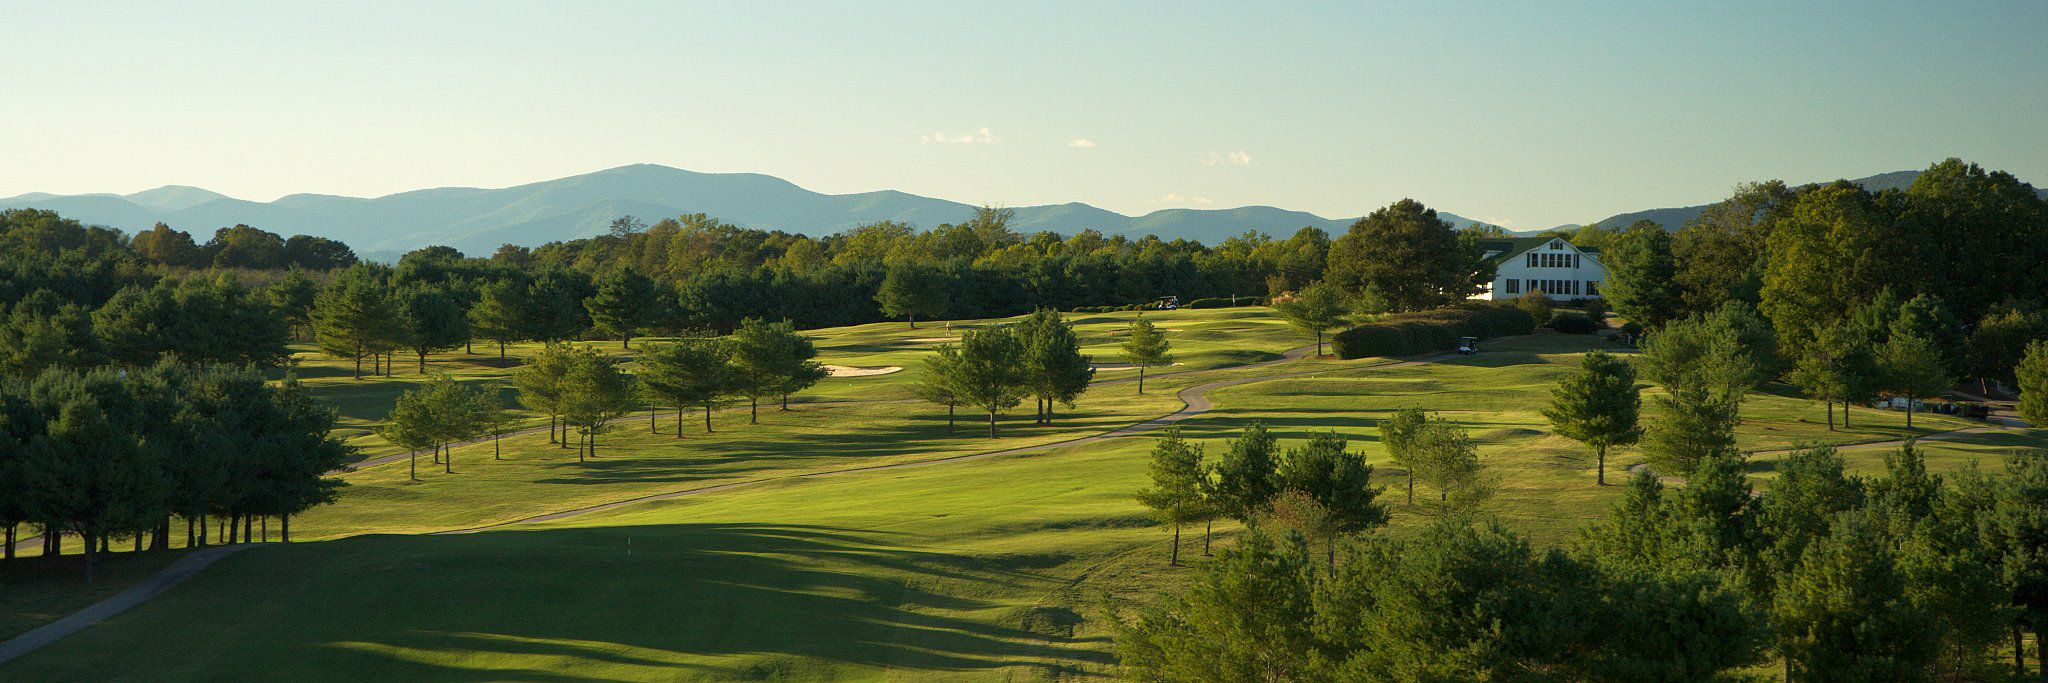 apple mountain resort - golf course - all square golf